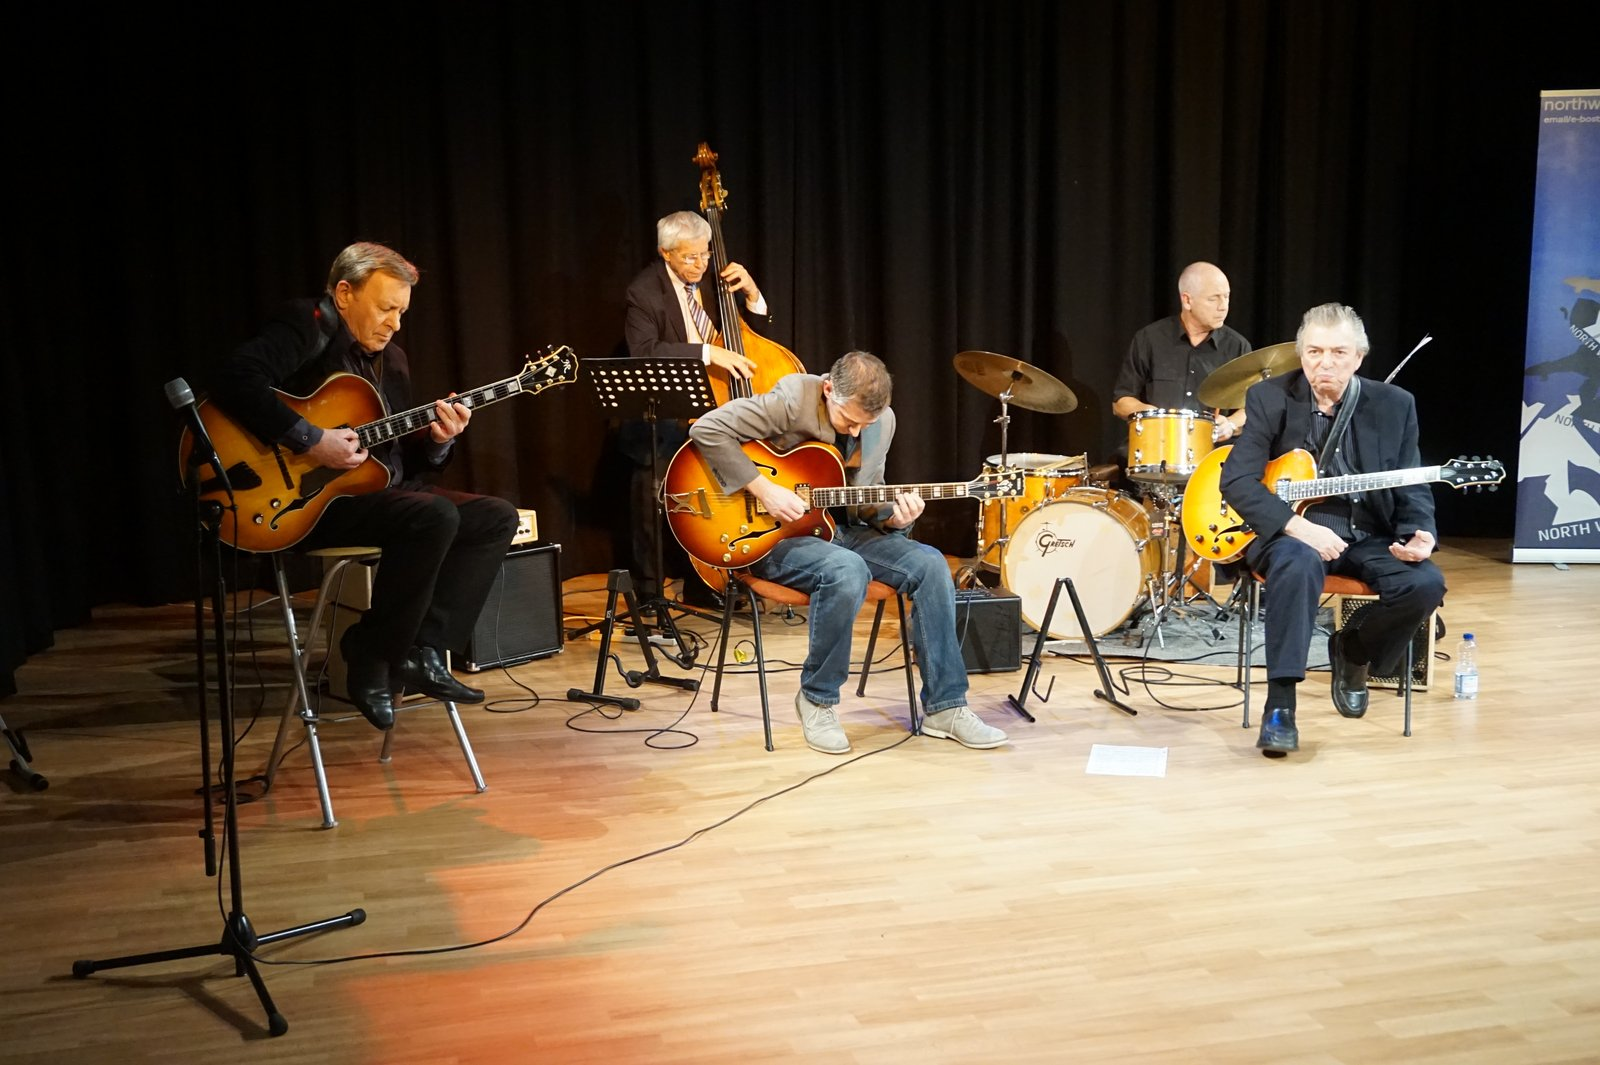 24th North Wales Jazz Guitar Weekend